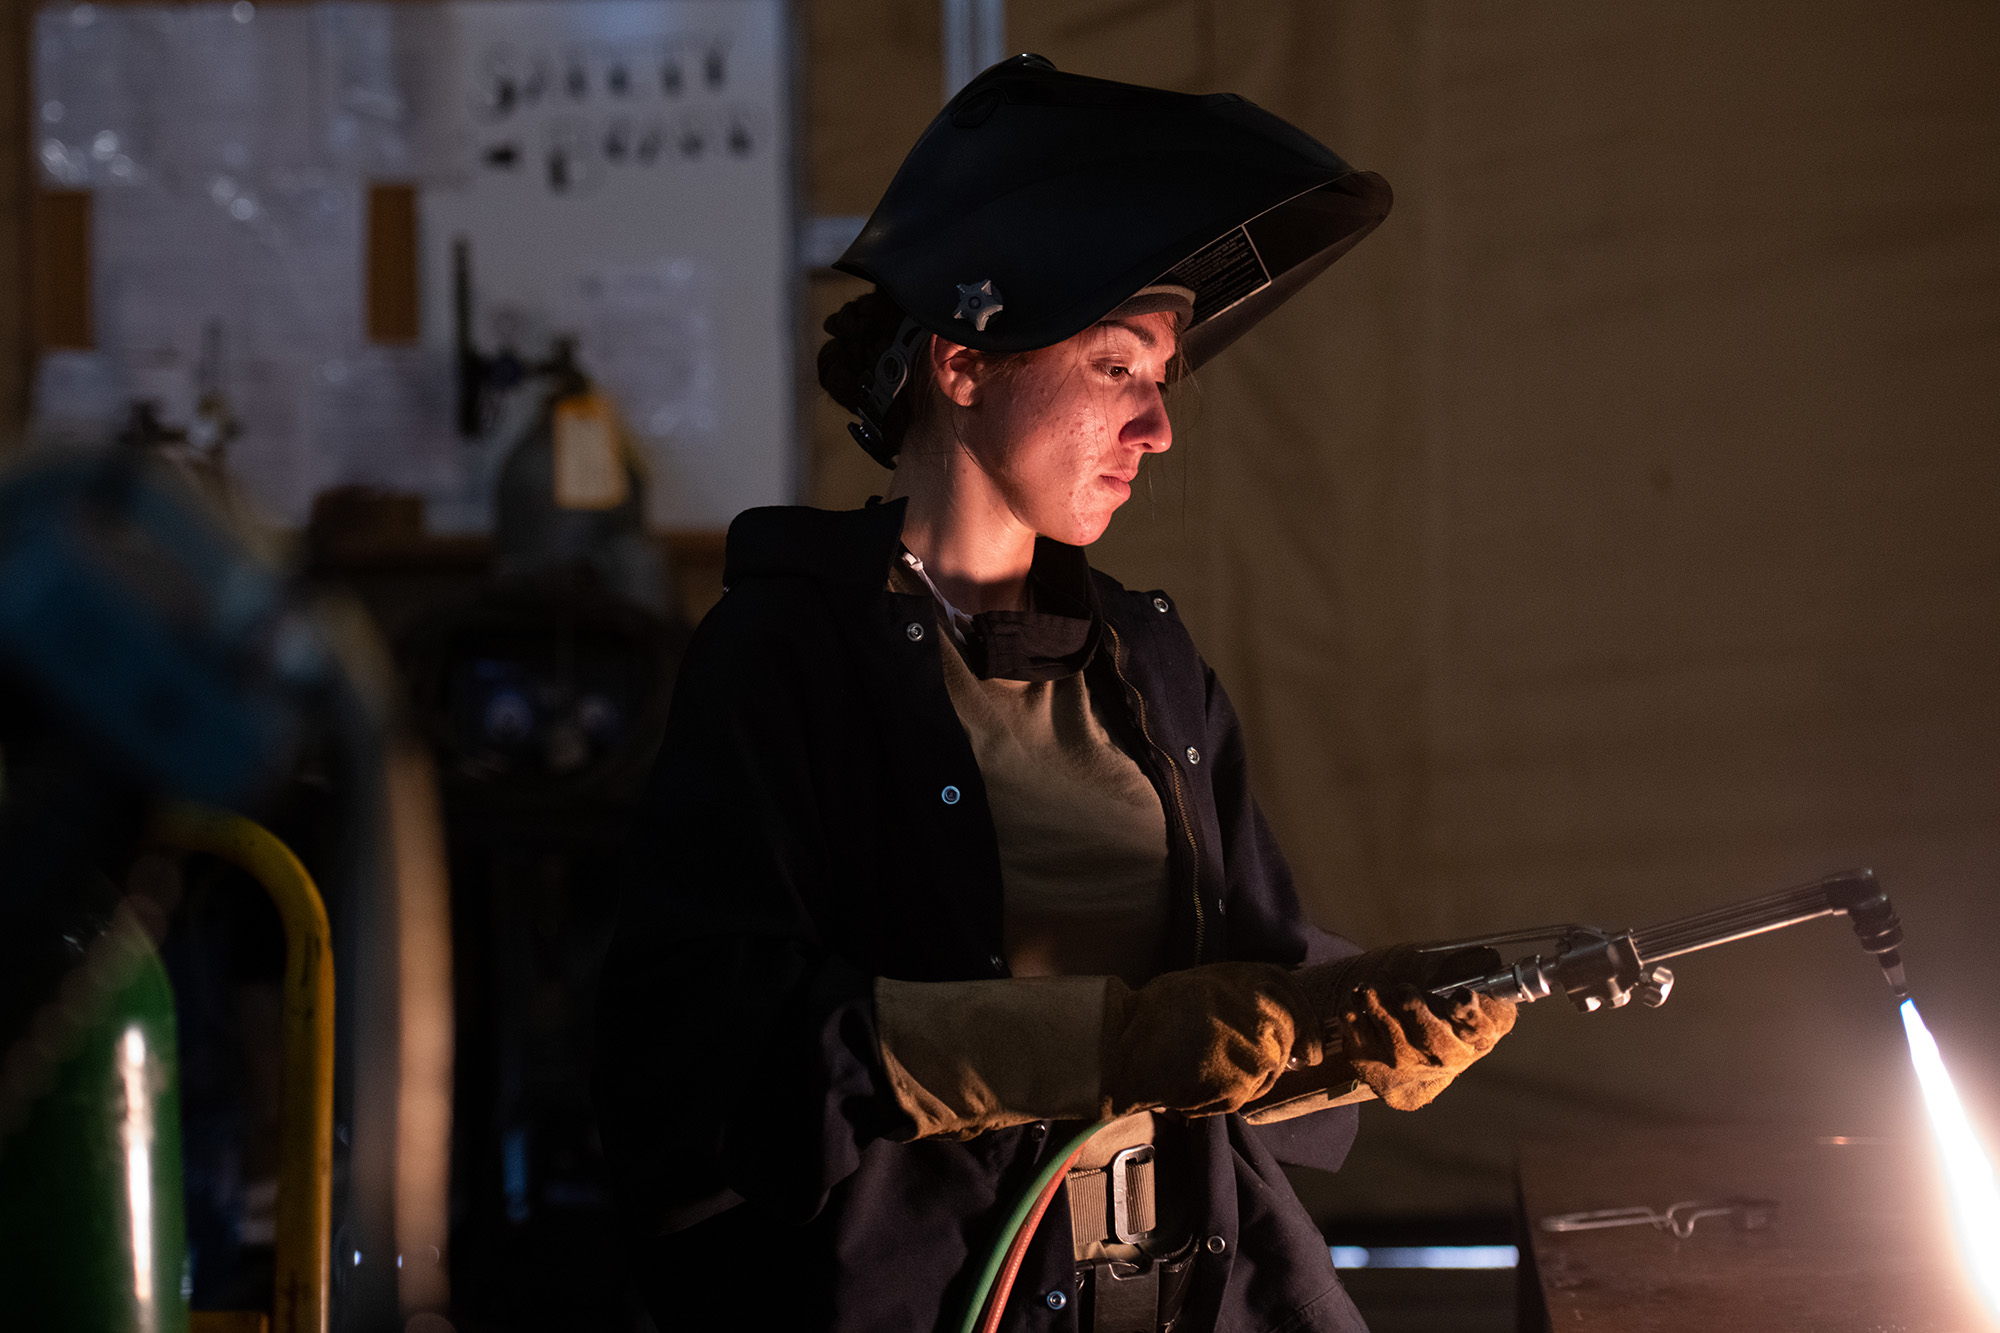 Staff Sgt. Natalie Delgado, an aircraft metals technician deployed to the 332d Air Expeditionary Wing, lights a torch preparing to cut metal on Sept. 24, 2020, in an undisclosed location. (Master Sgt. Jonathan Young/Air National Guard)